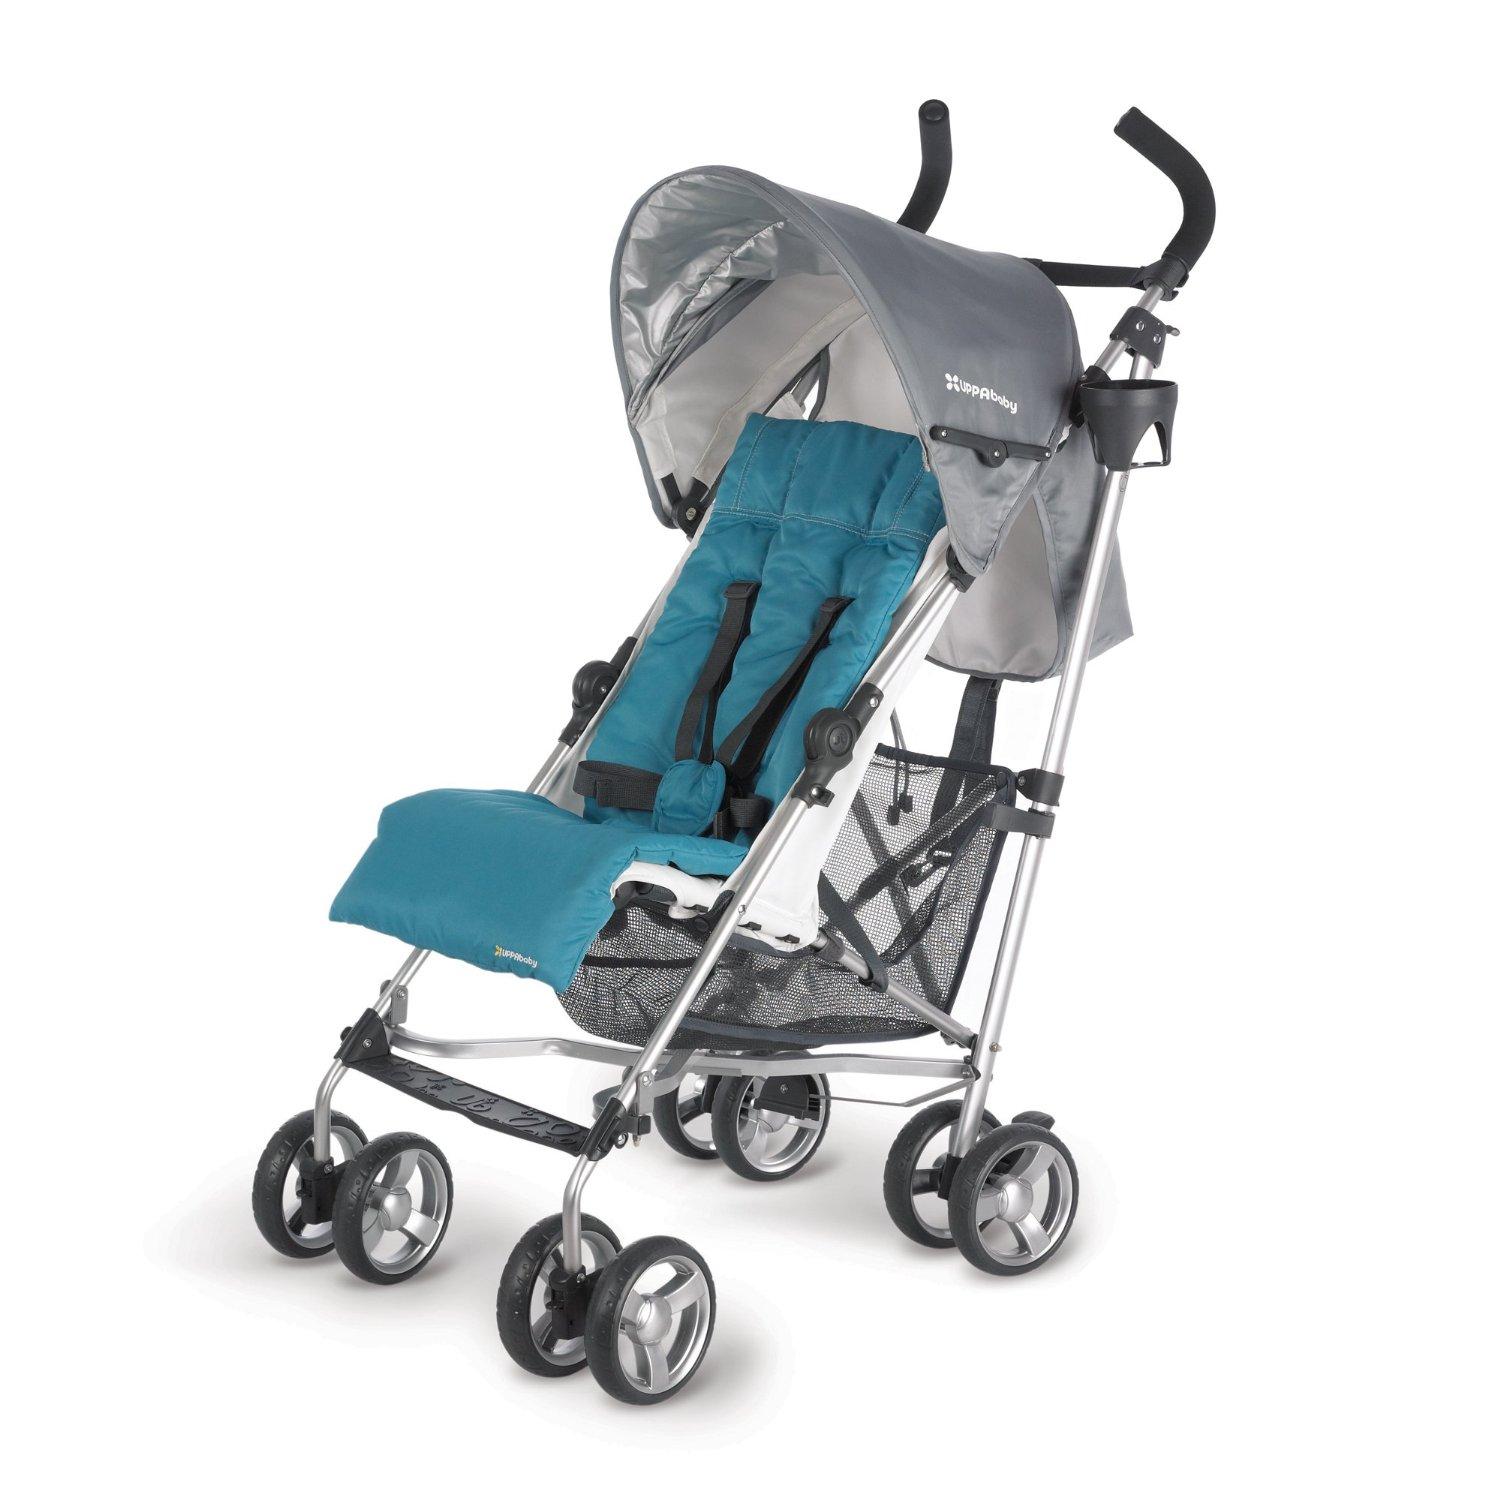 What Is The Best Umbrella Stroller for Tall People?